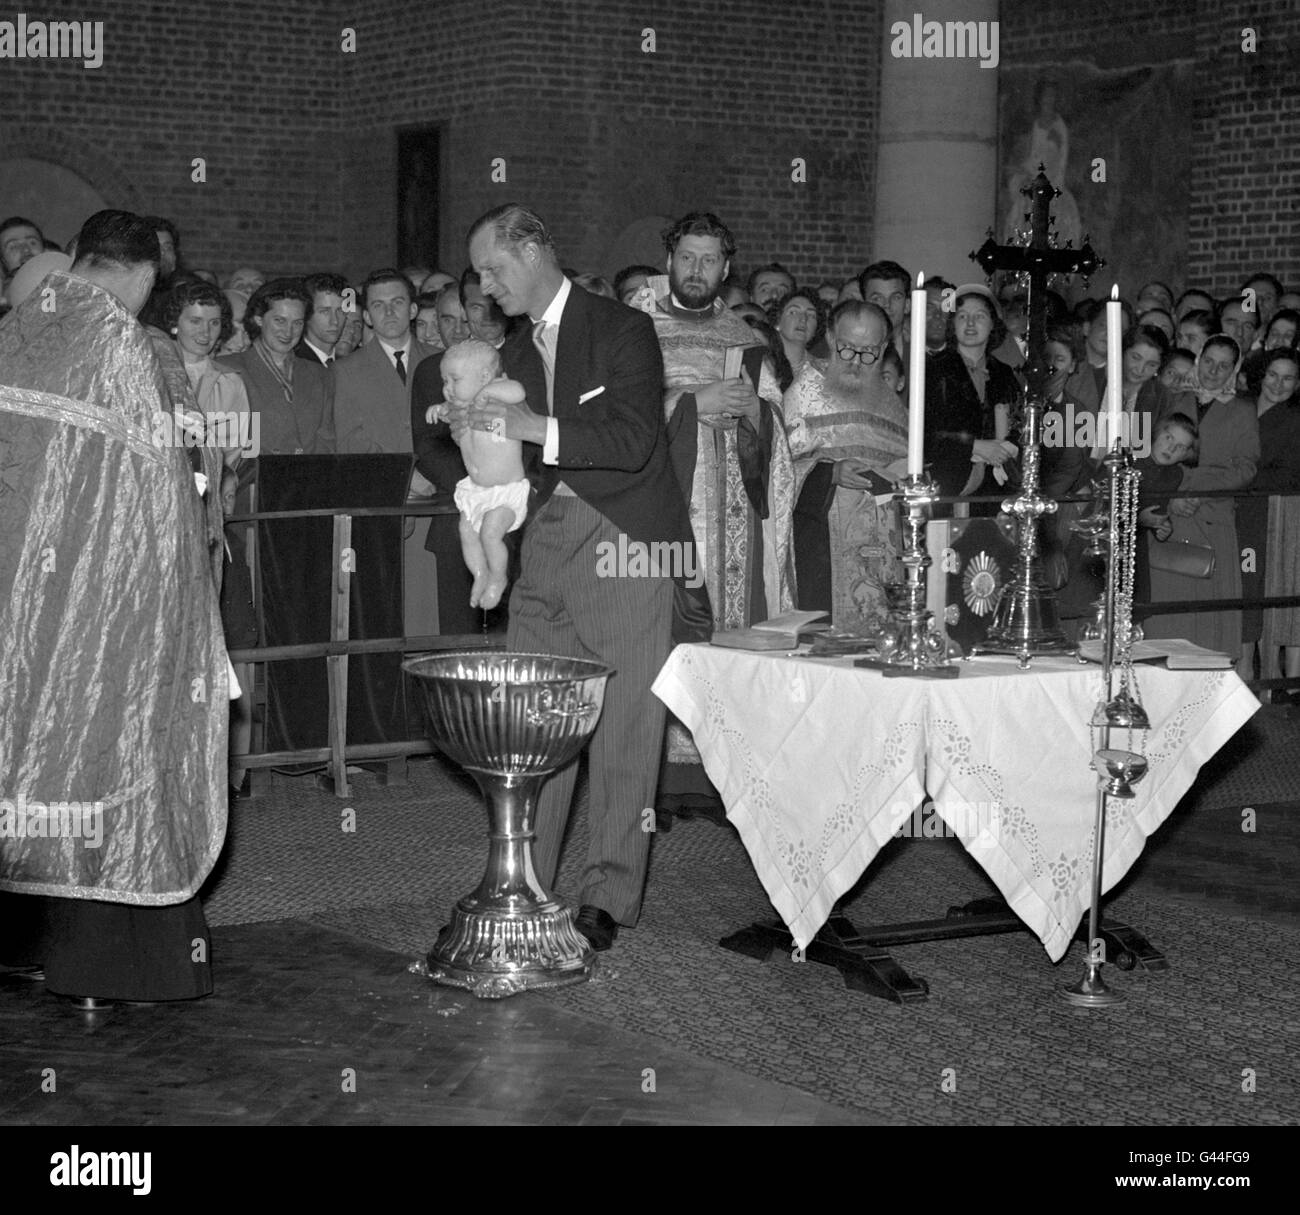 Royalty - Princess Marija Christening - Serbian Orthodox Church, London Stock Photo